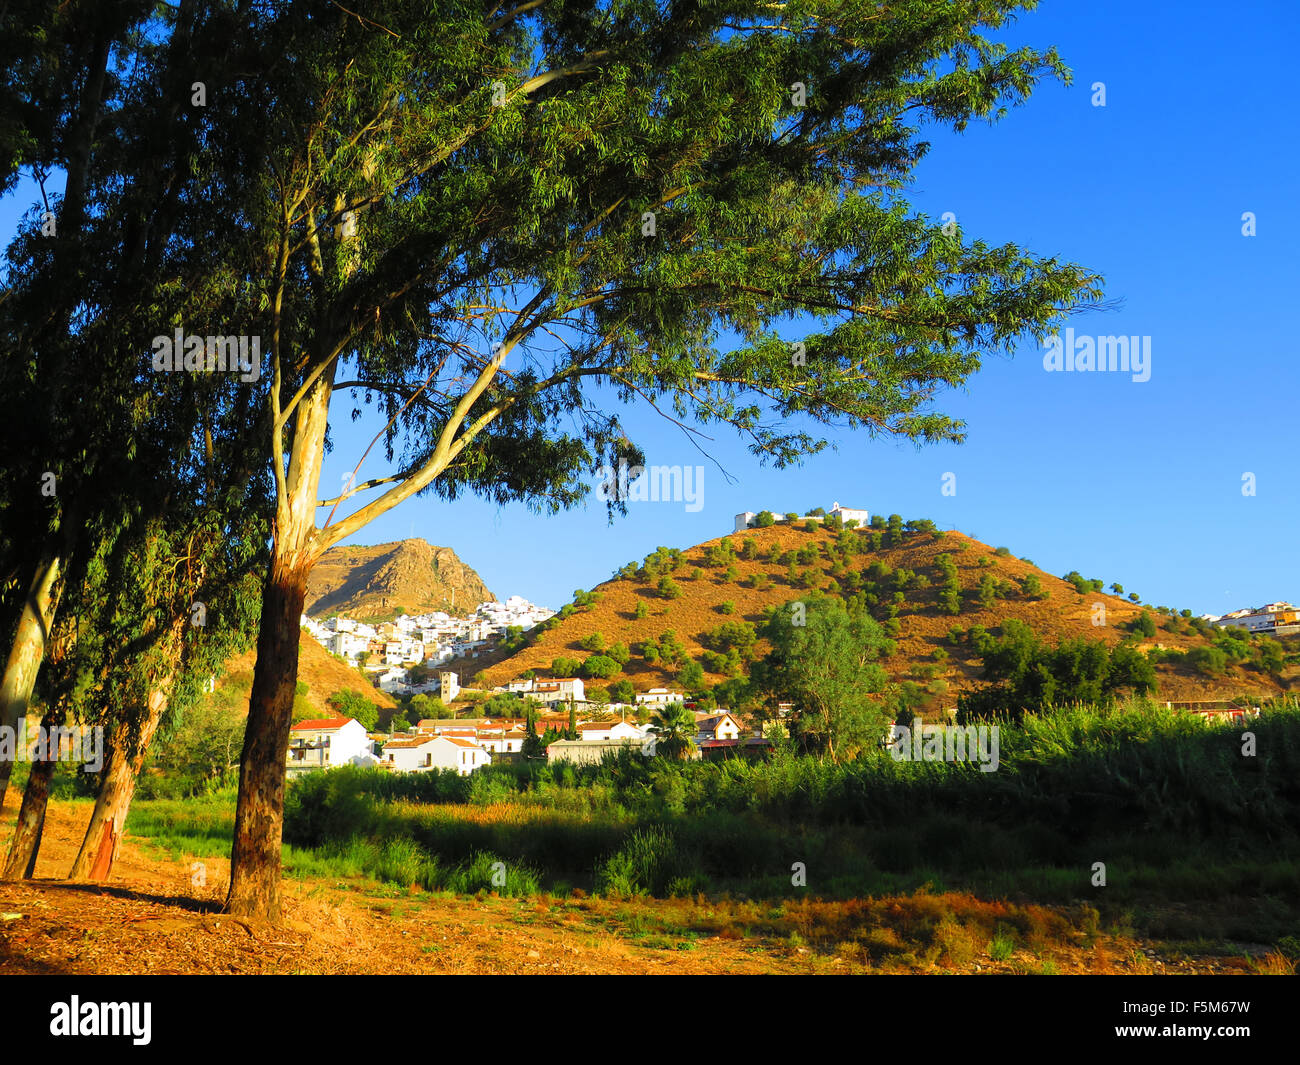 White Village of Alora Andalucia viewed from across the Guadalhorce River - Stock Image